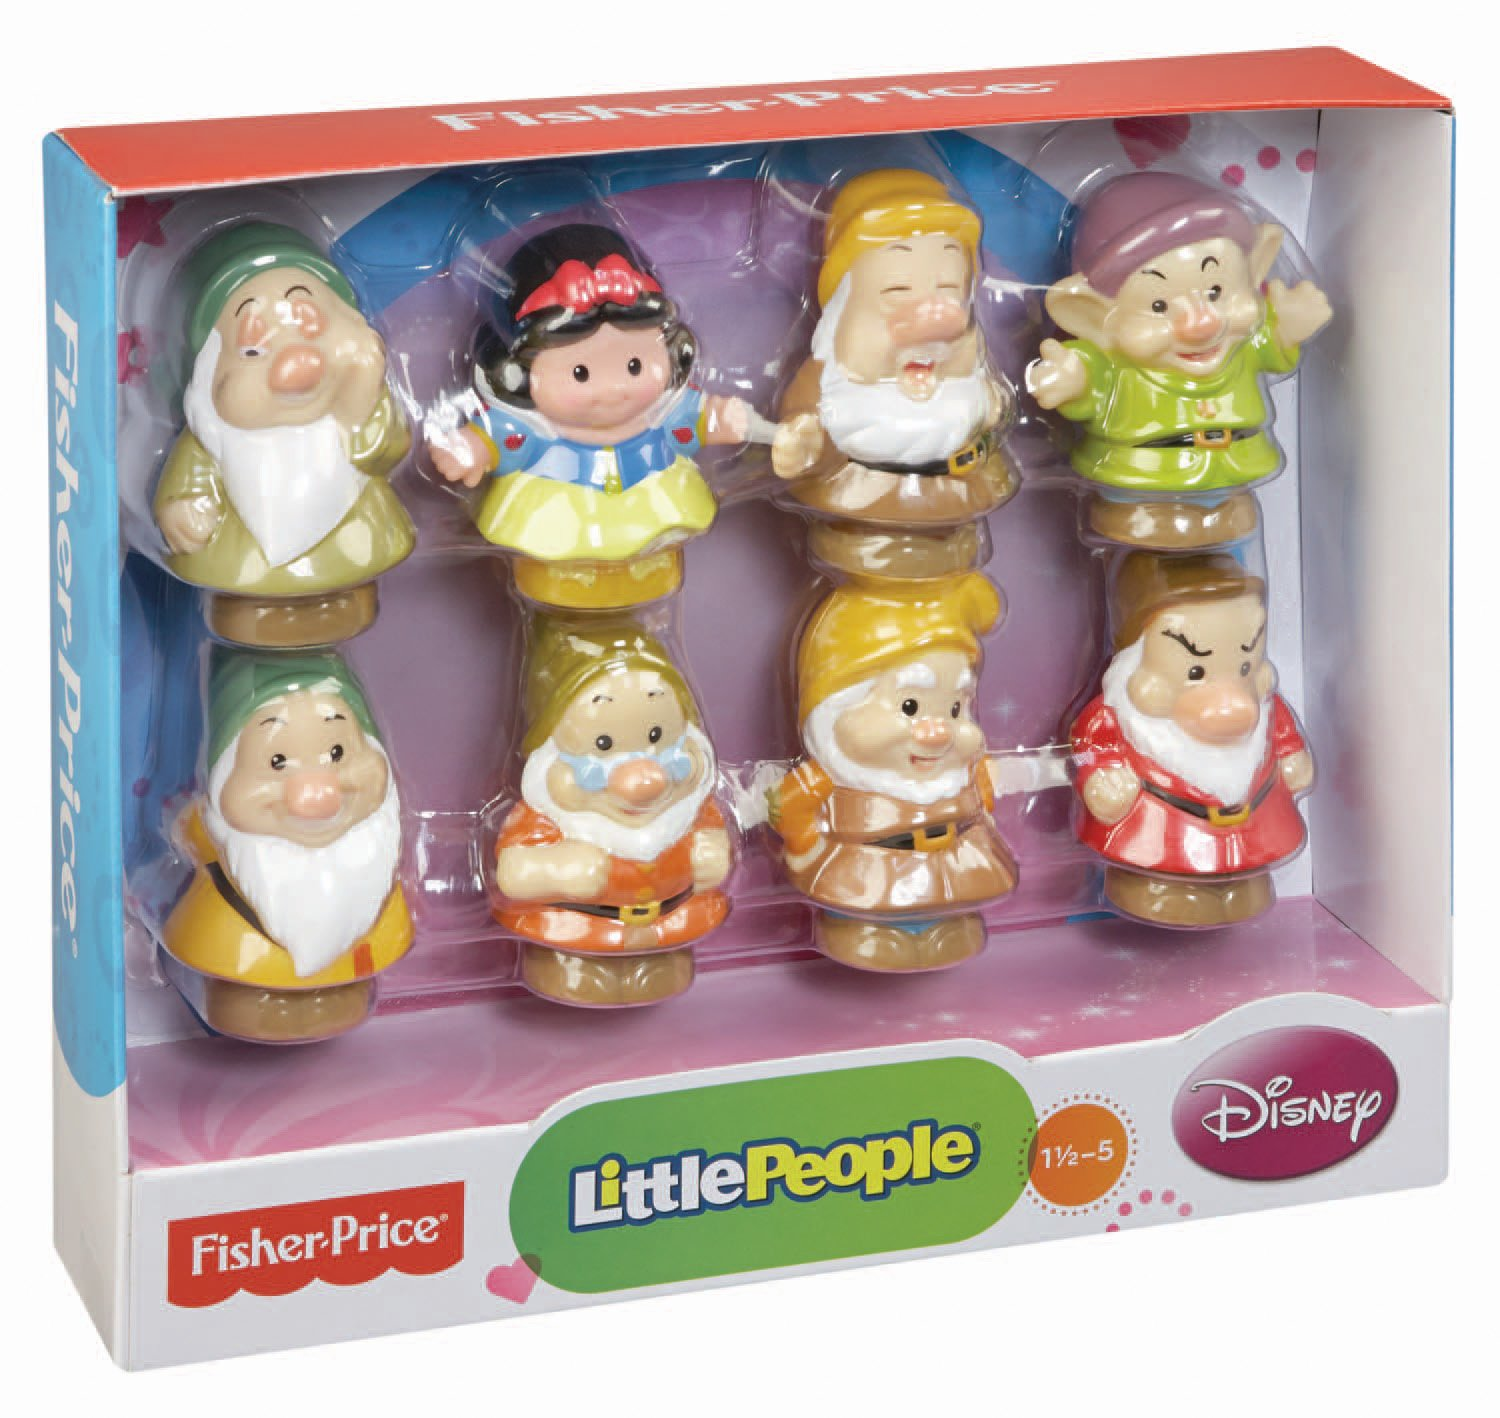 7 dwarfs names in order - Amazon Com Fisher Price Little People Disney Snow White And The Seven Dwarfs Toys Games